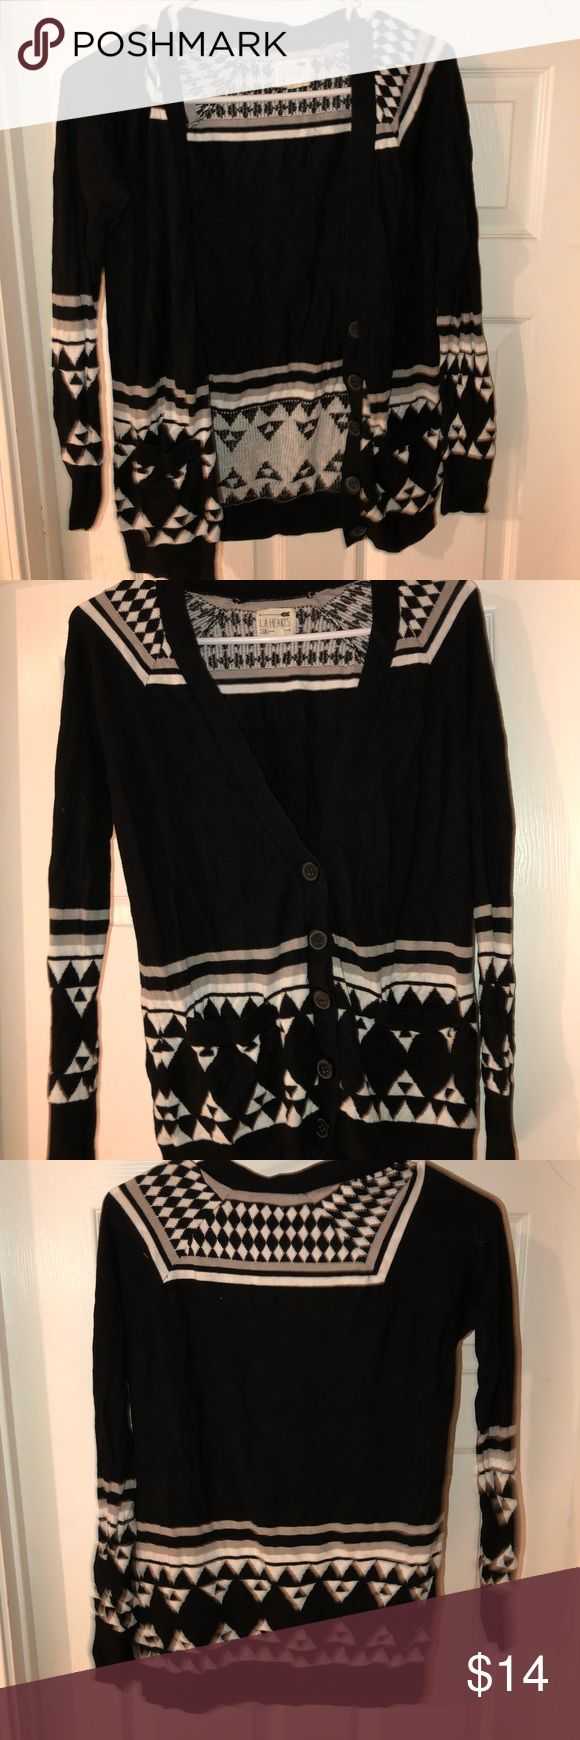 Black/White Tribal Print Cardigan Super soft material, goes down to thigh, feels brand new! La Hearts Sweaters Cardigans